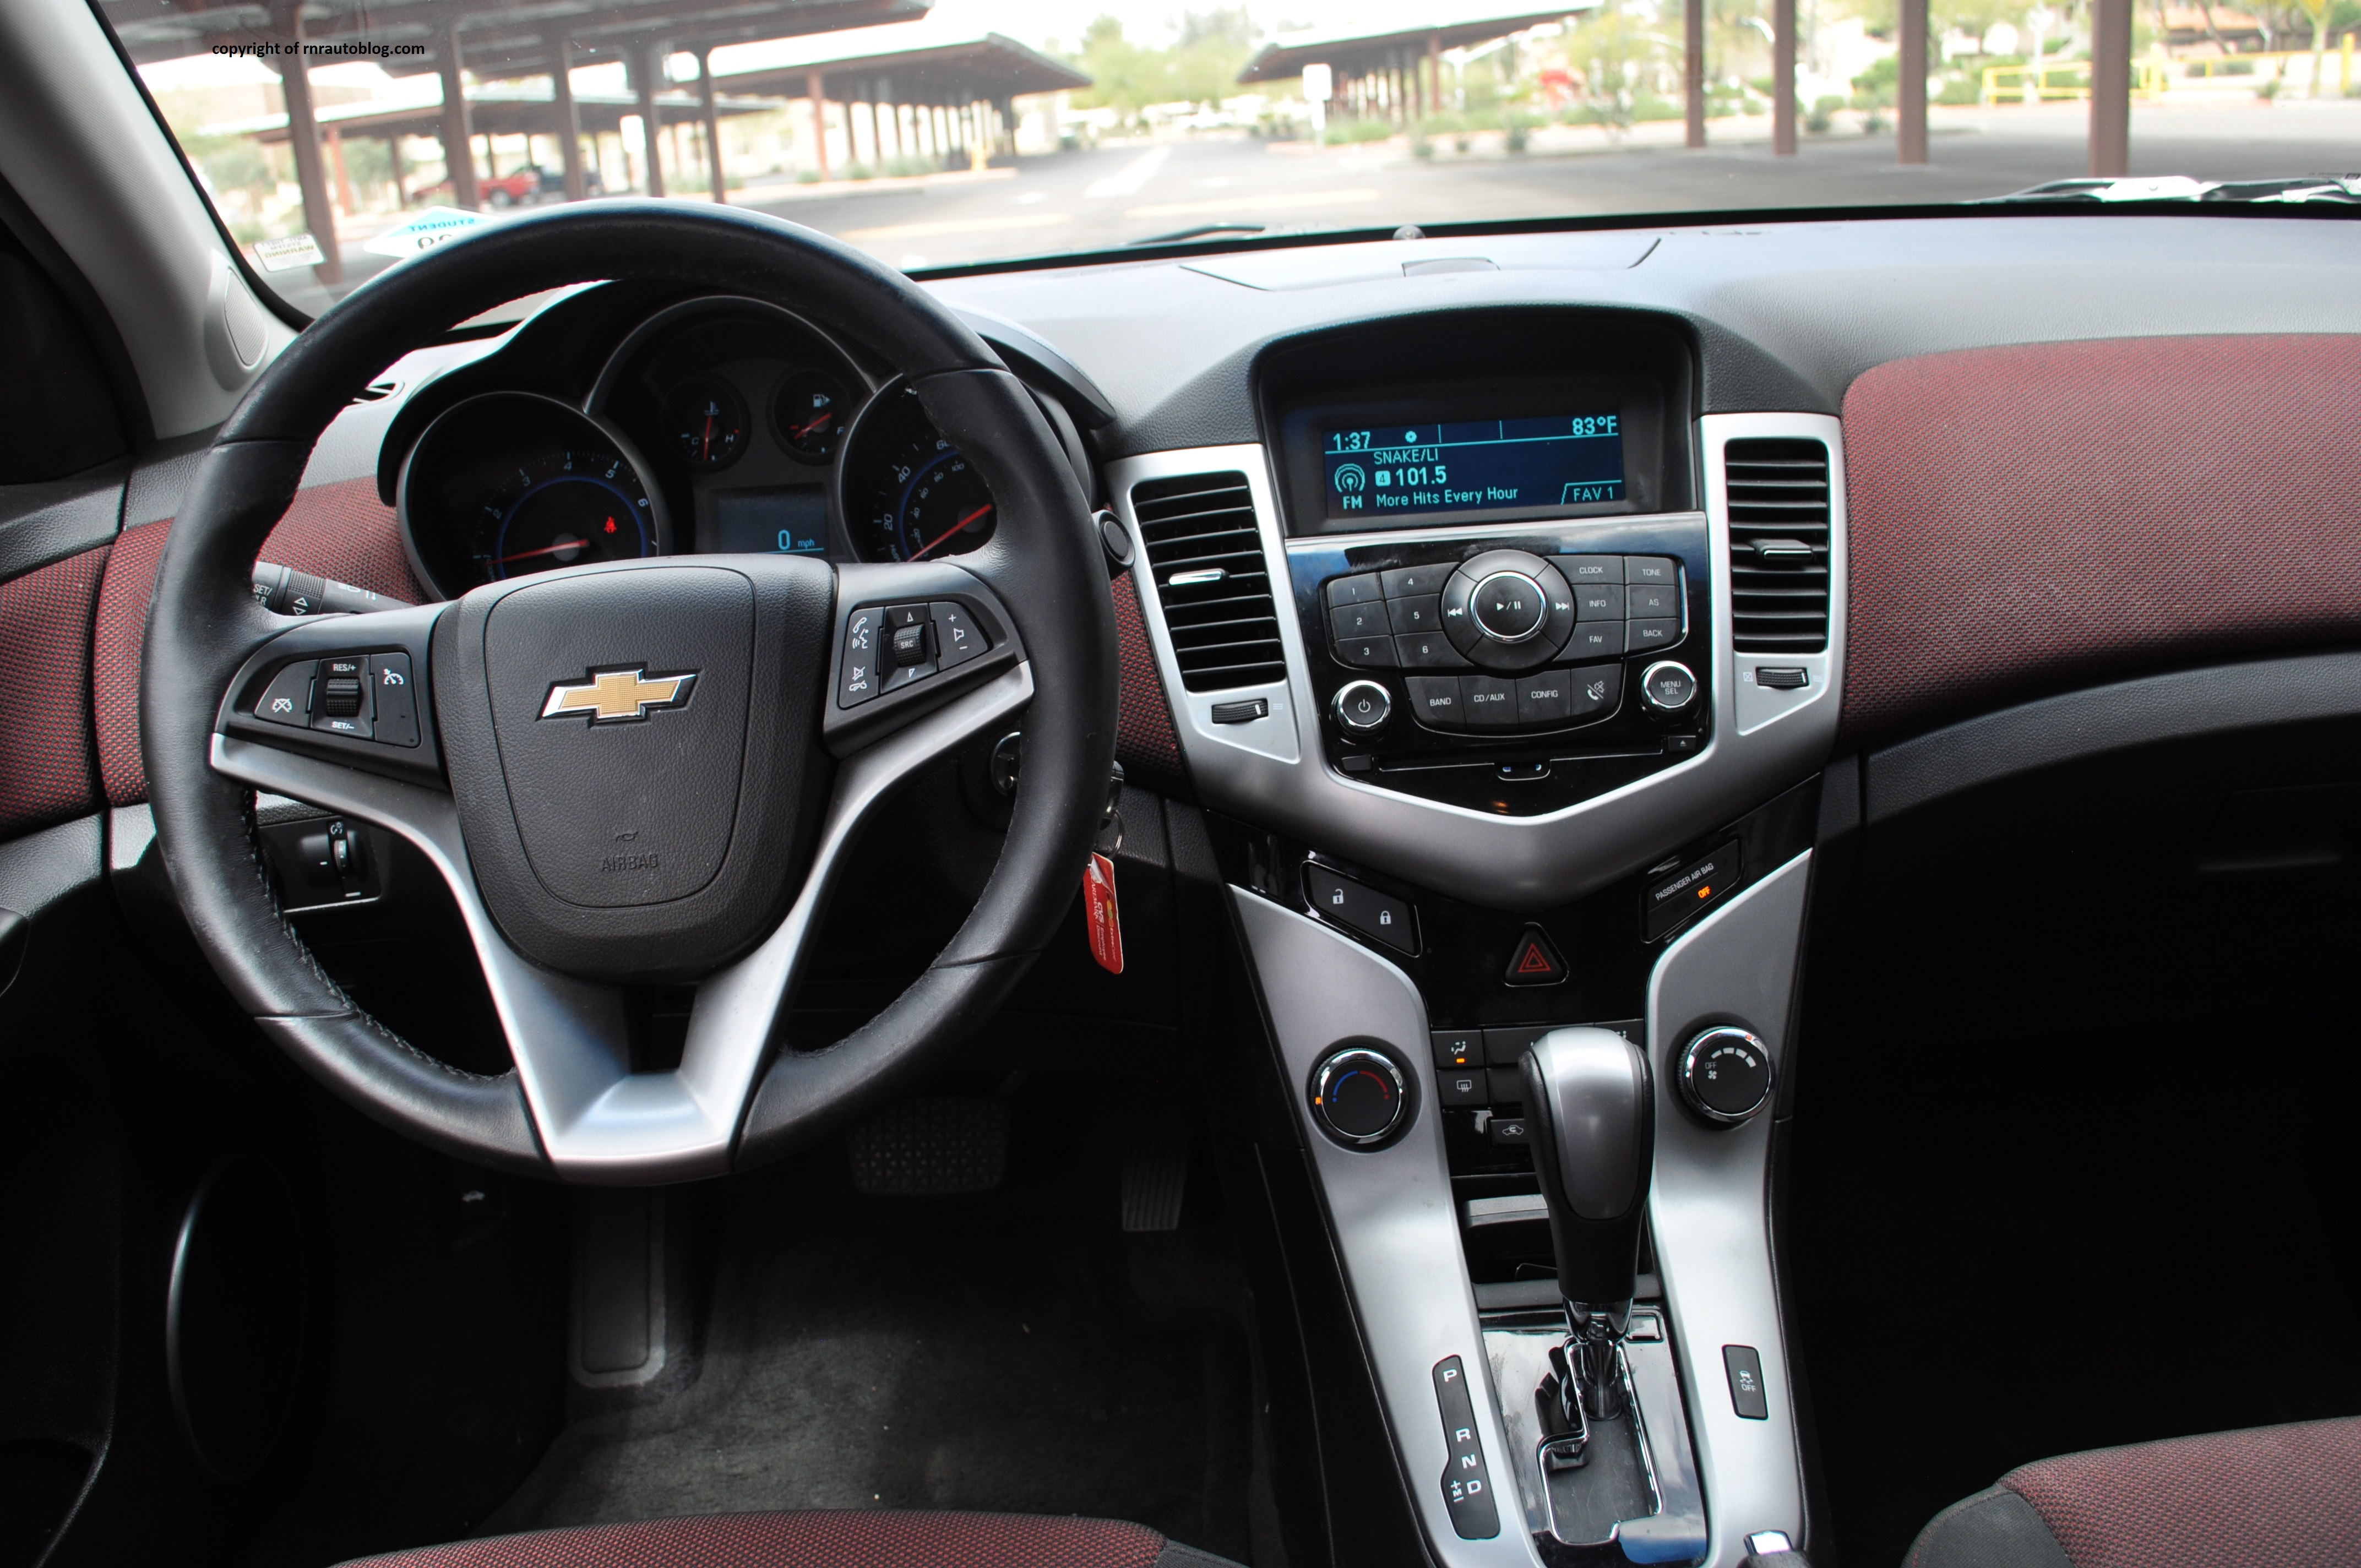 detail styling chevy media content cruze us apr updates nyas lte en news onstar newyork autoshows cruzeltz siri chevrolet for pages archive list